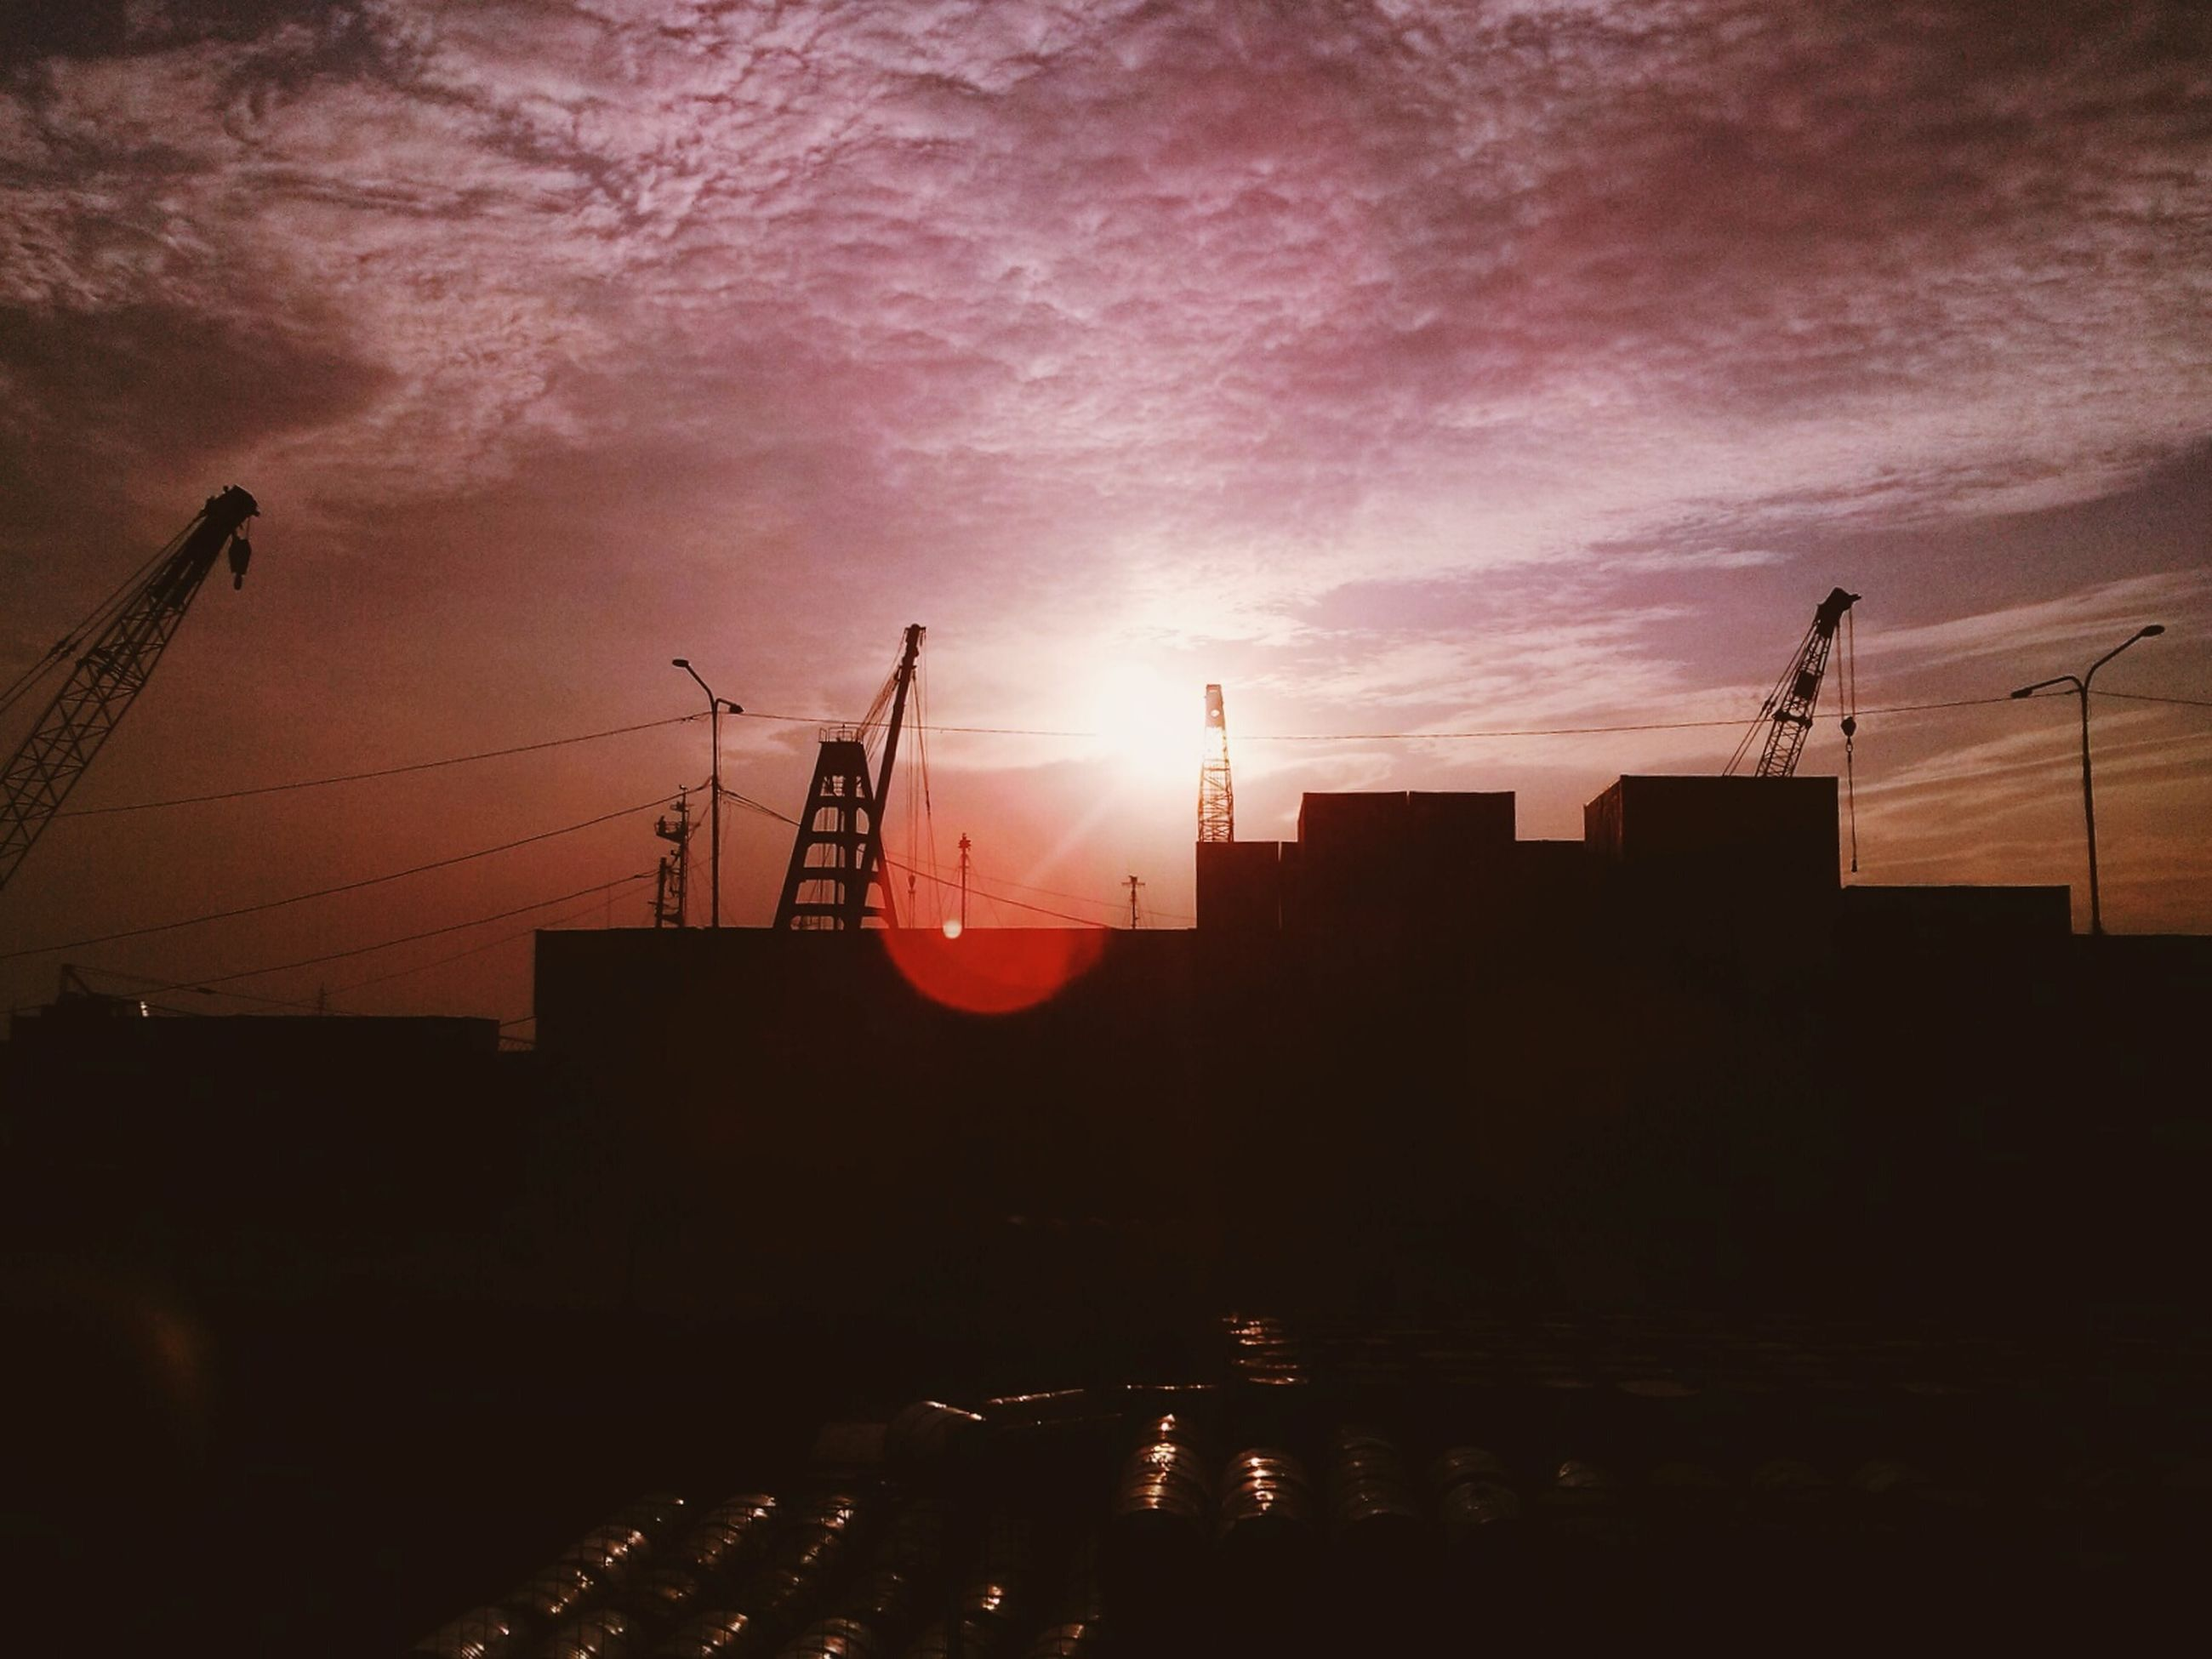 building exterior, sunset, architecture, built structure, sky, silhouette, crane - construction machinery, construction site, cloud - sky, development, city, crane, industry, orange color, building, dusk, cloudy, cloud, outdoors, construction